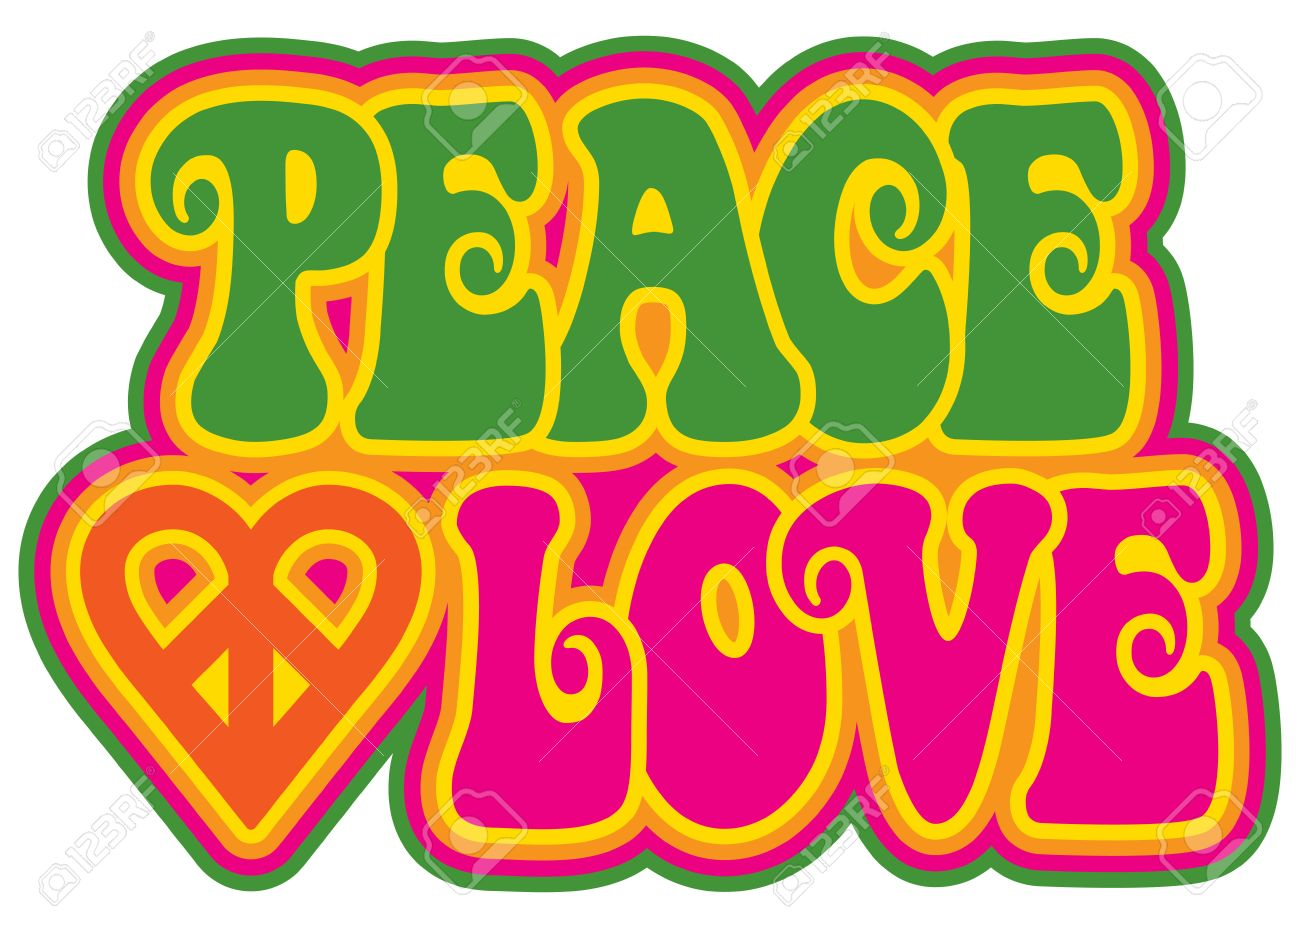 Peace and Love retro-styled text design with a peace heart symbol in green, pink, yellow and orange. - 58180853